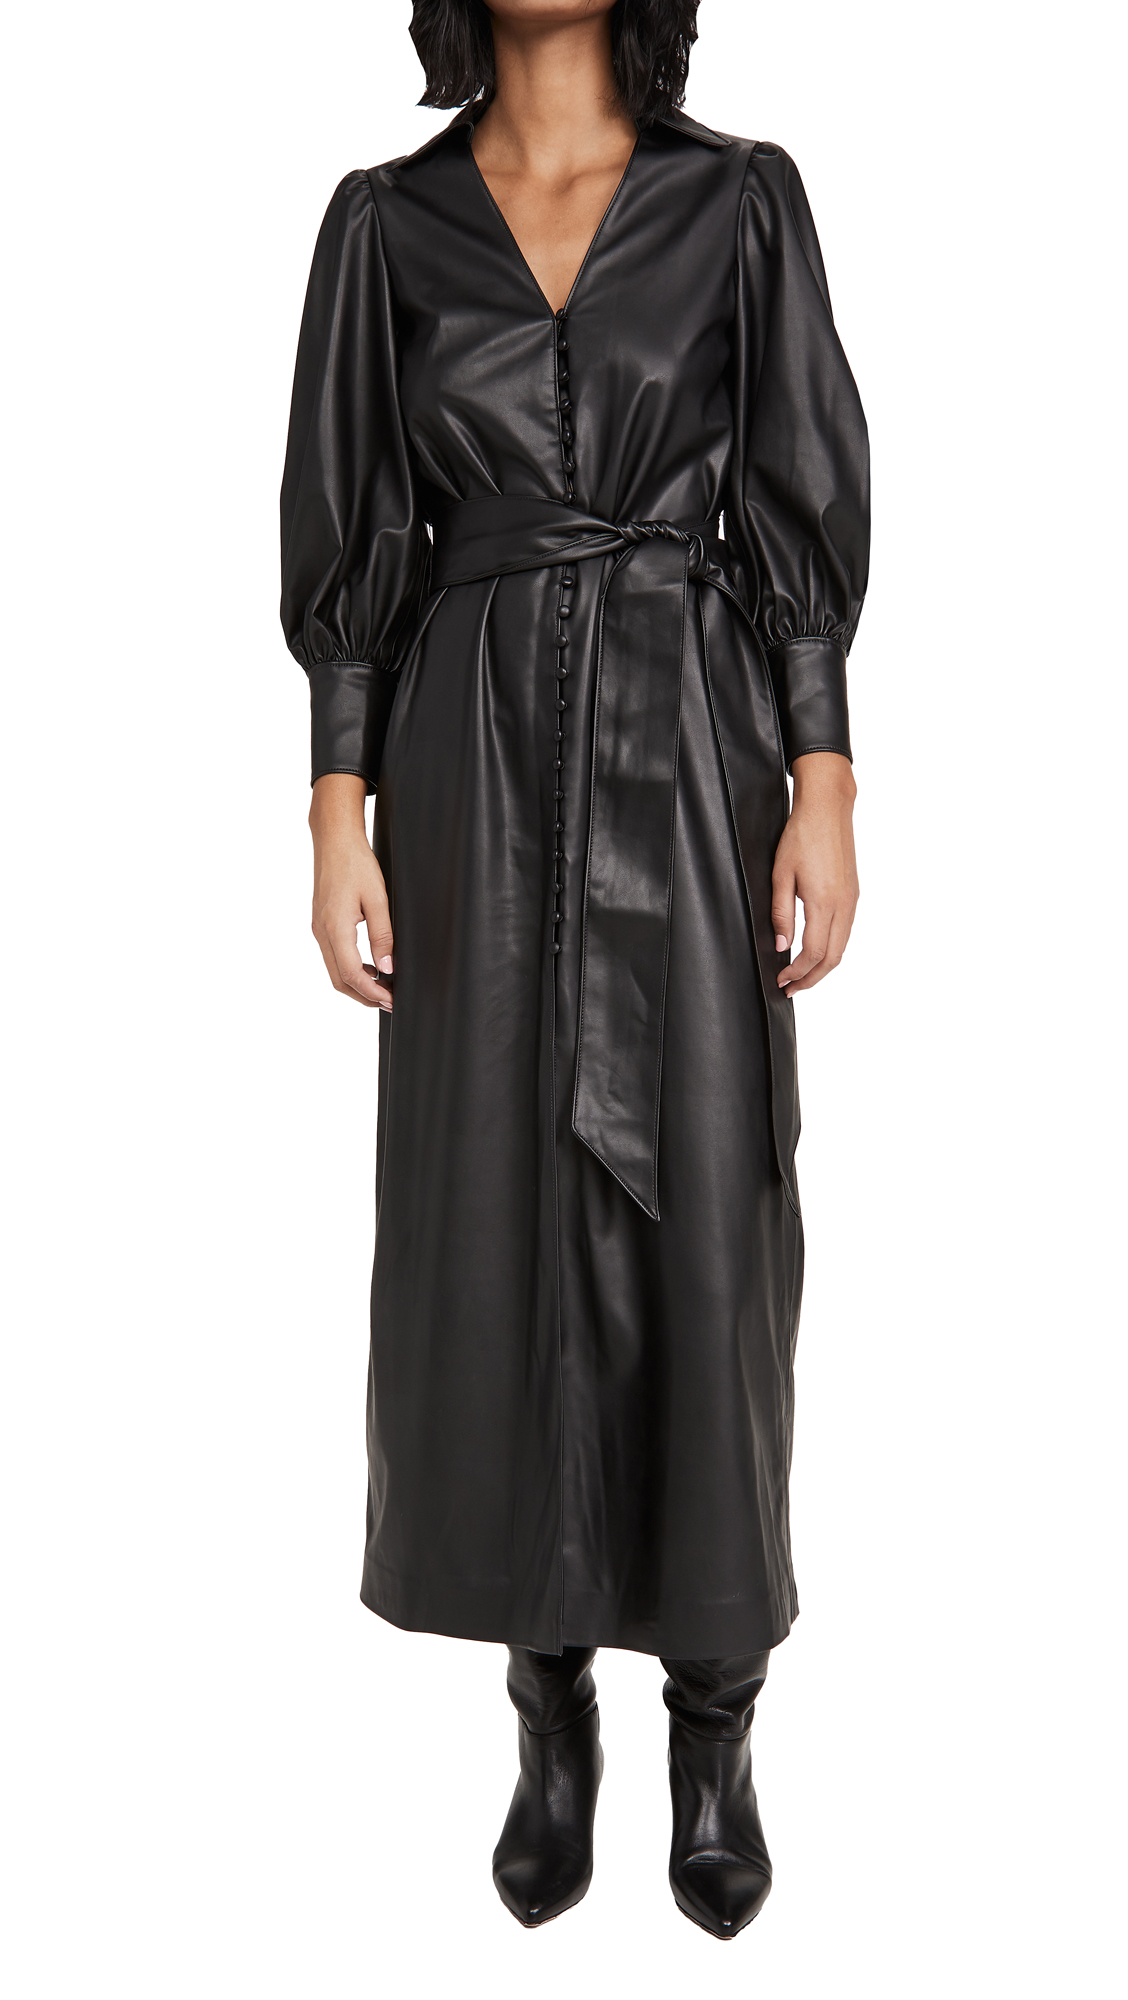 alice + olivia Zarita Vegan Leather Dress with Tie